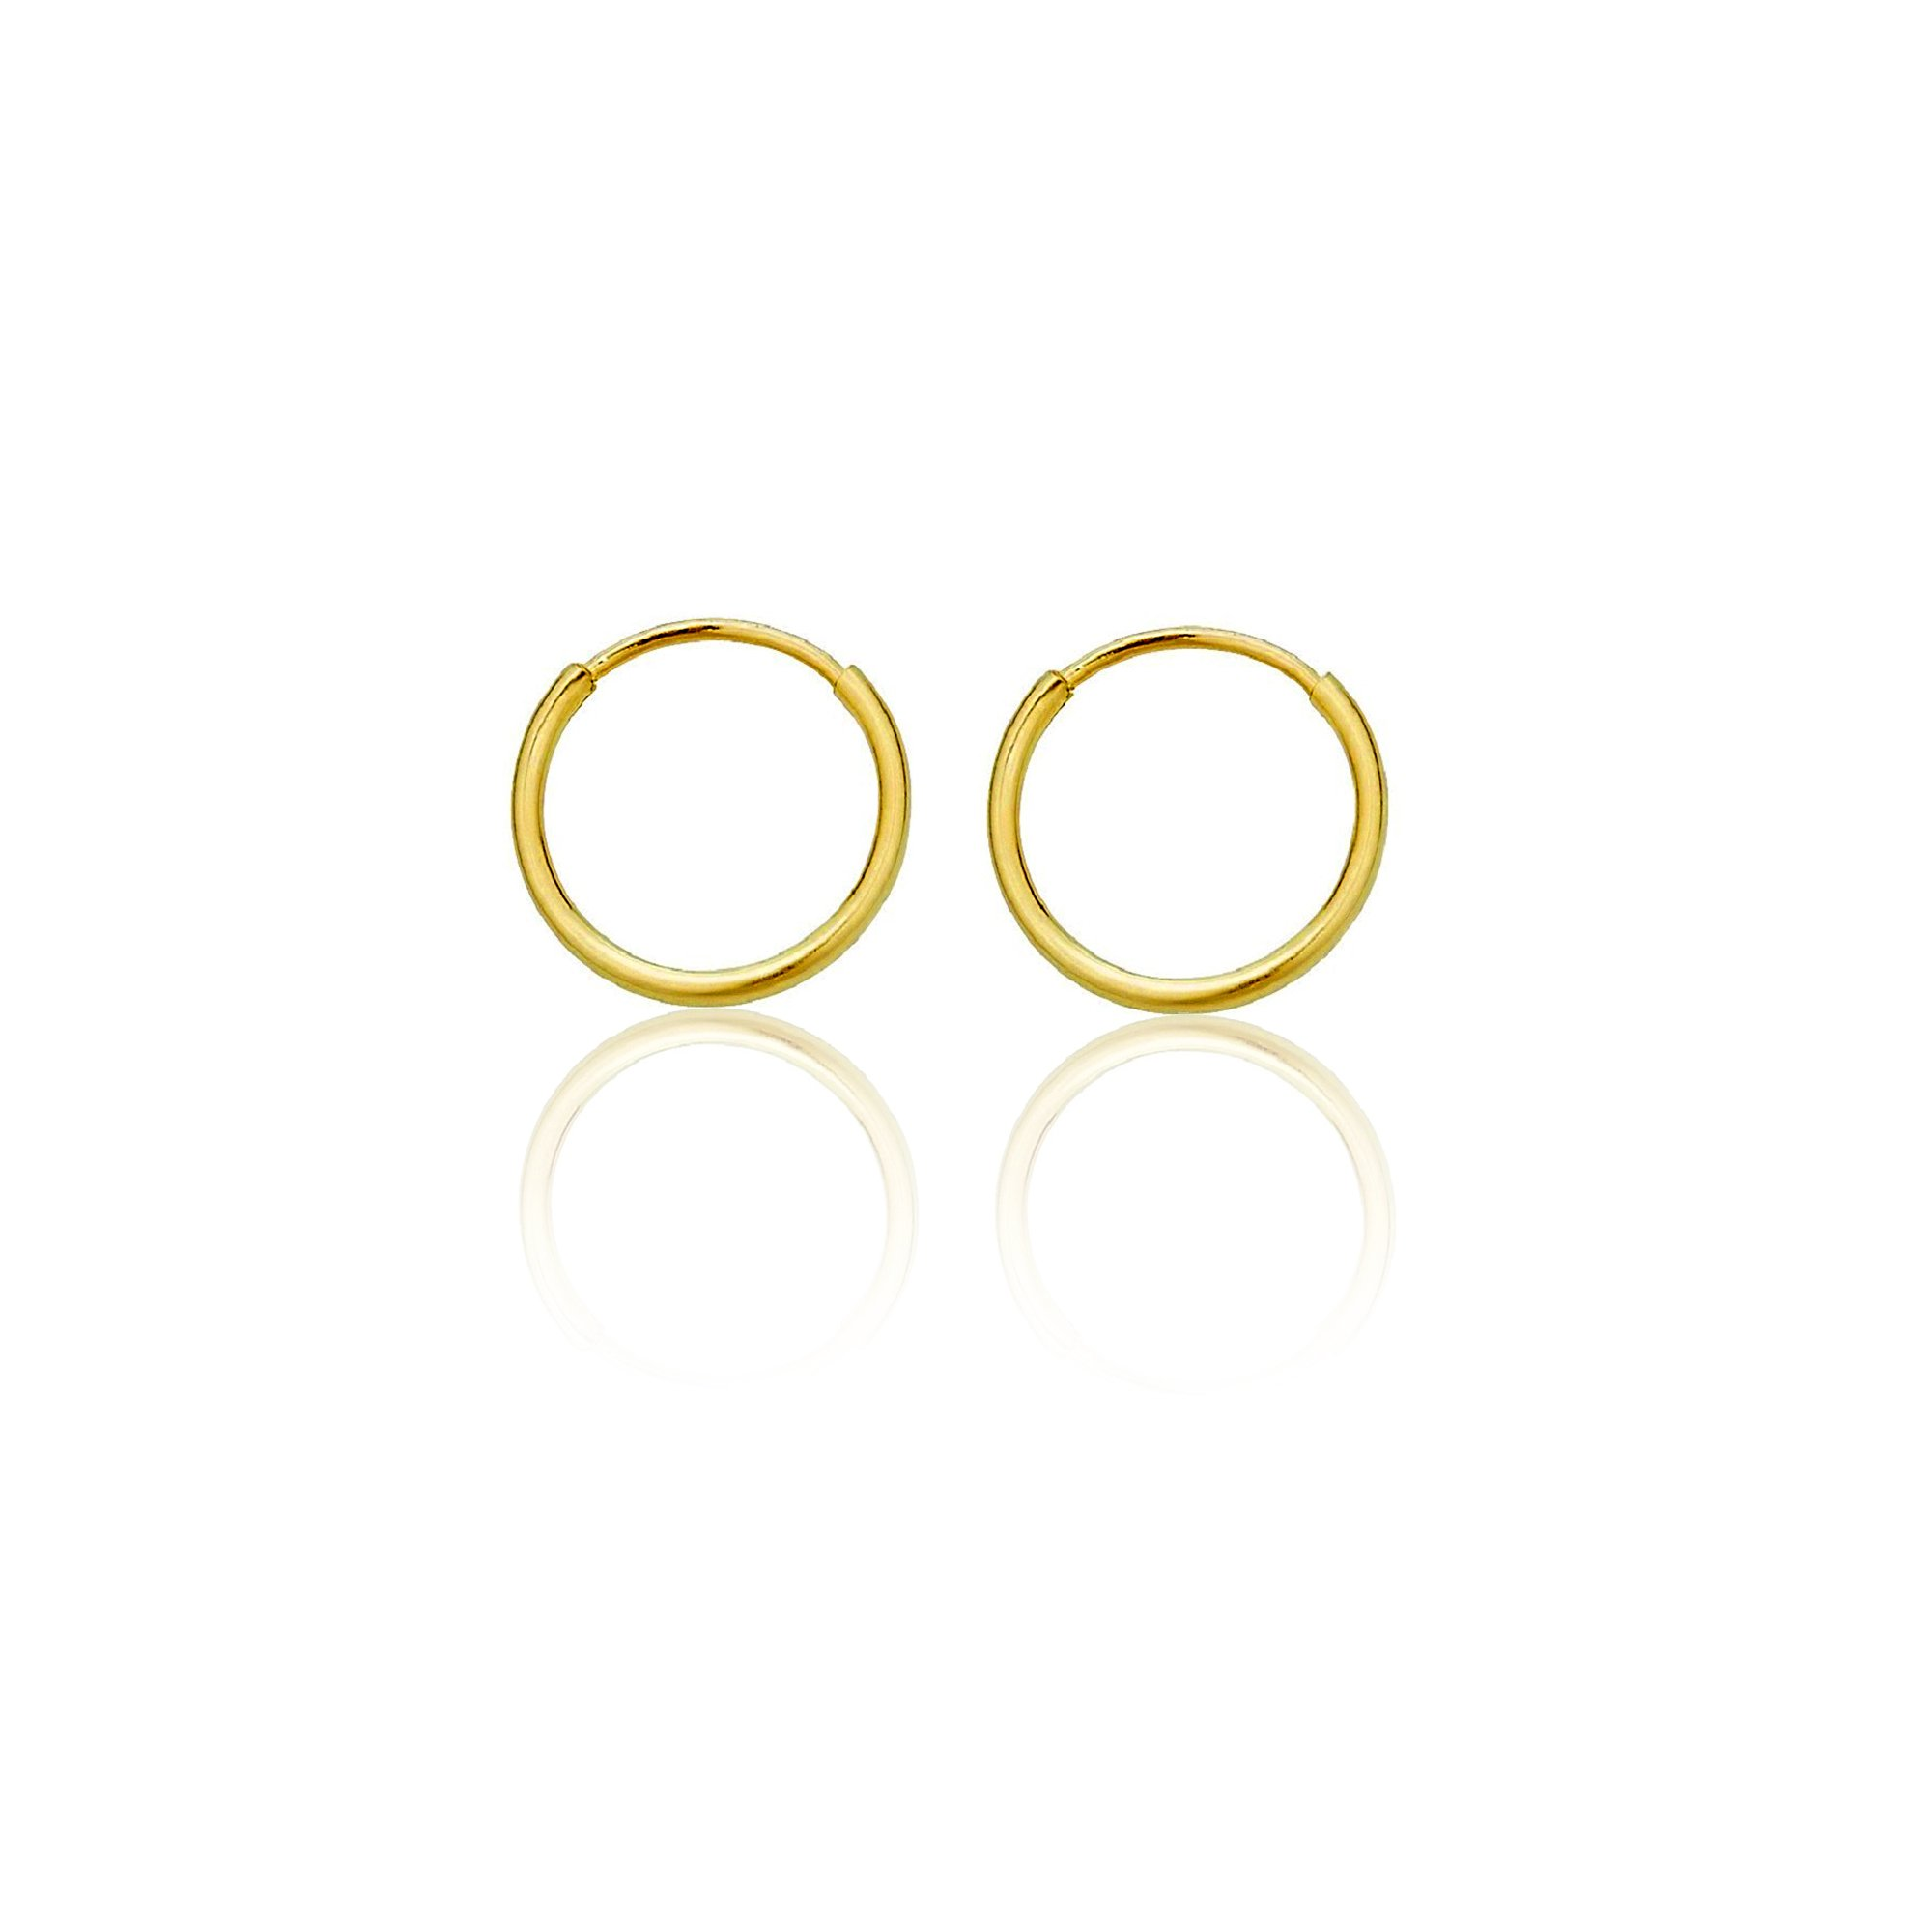 14K Gold Yellow Endless Hoop Earrings by Decadence (Image #1)